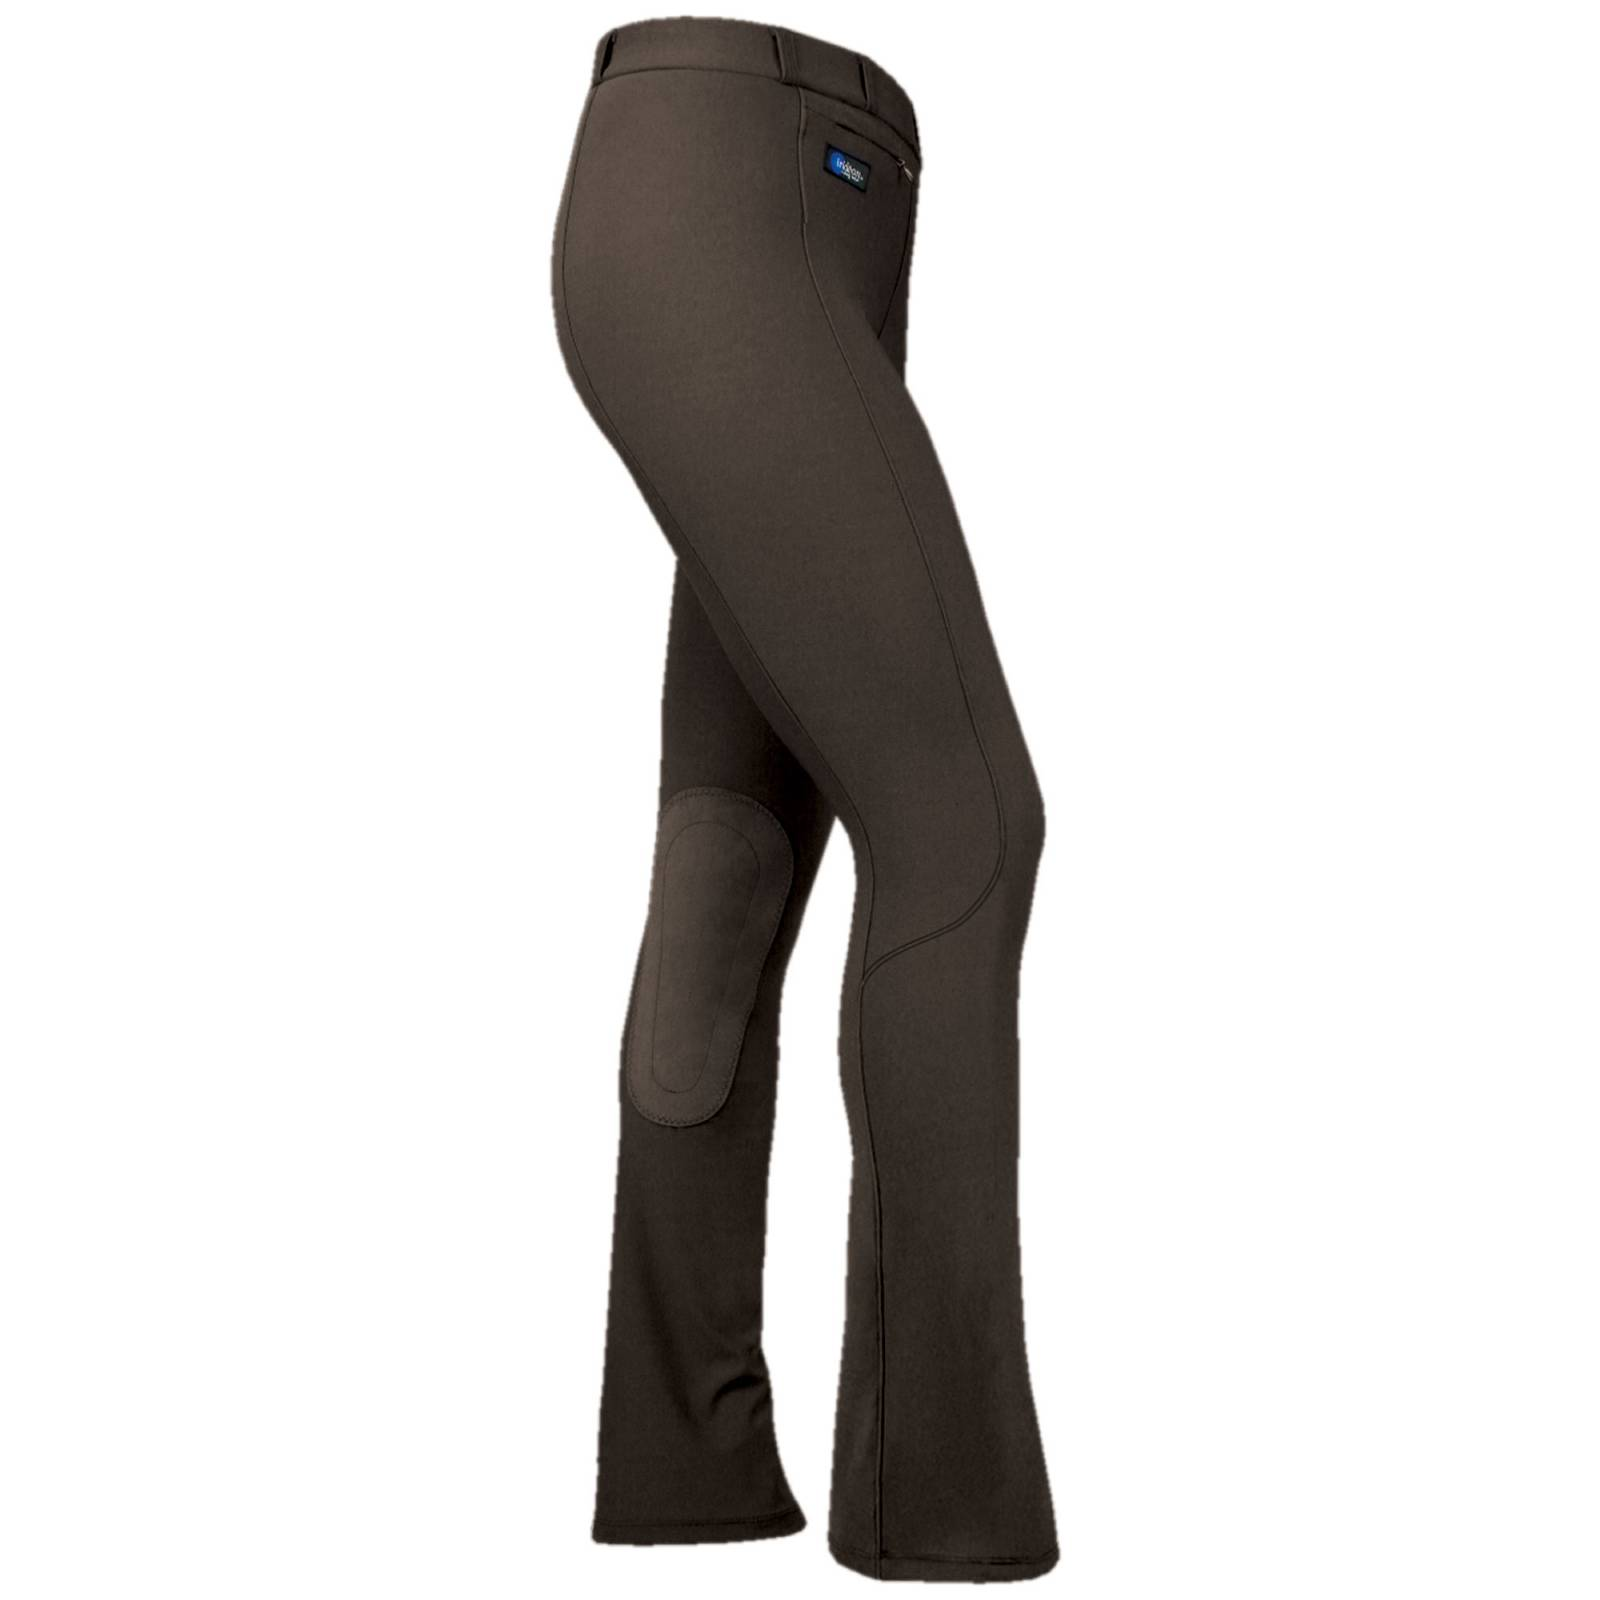 Irideon Ladies Issential Boot Cut Riding Tights